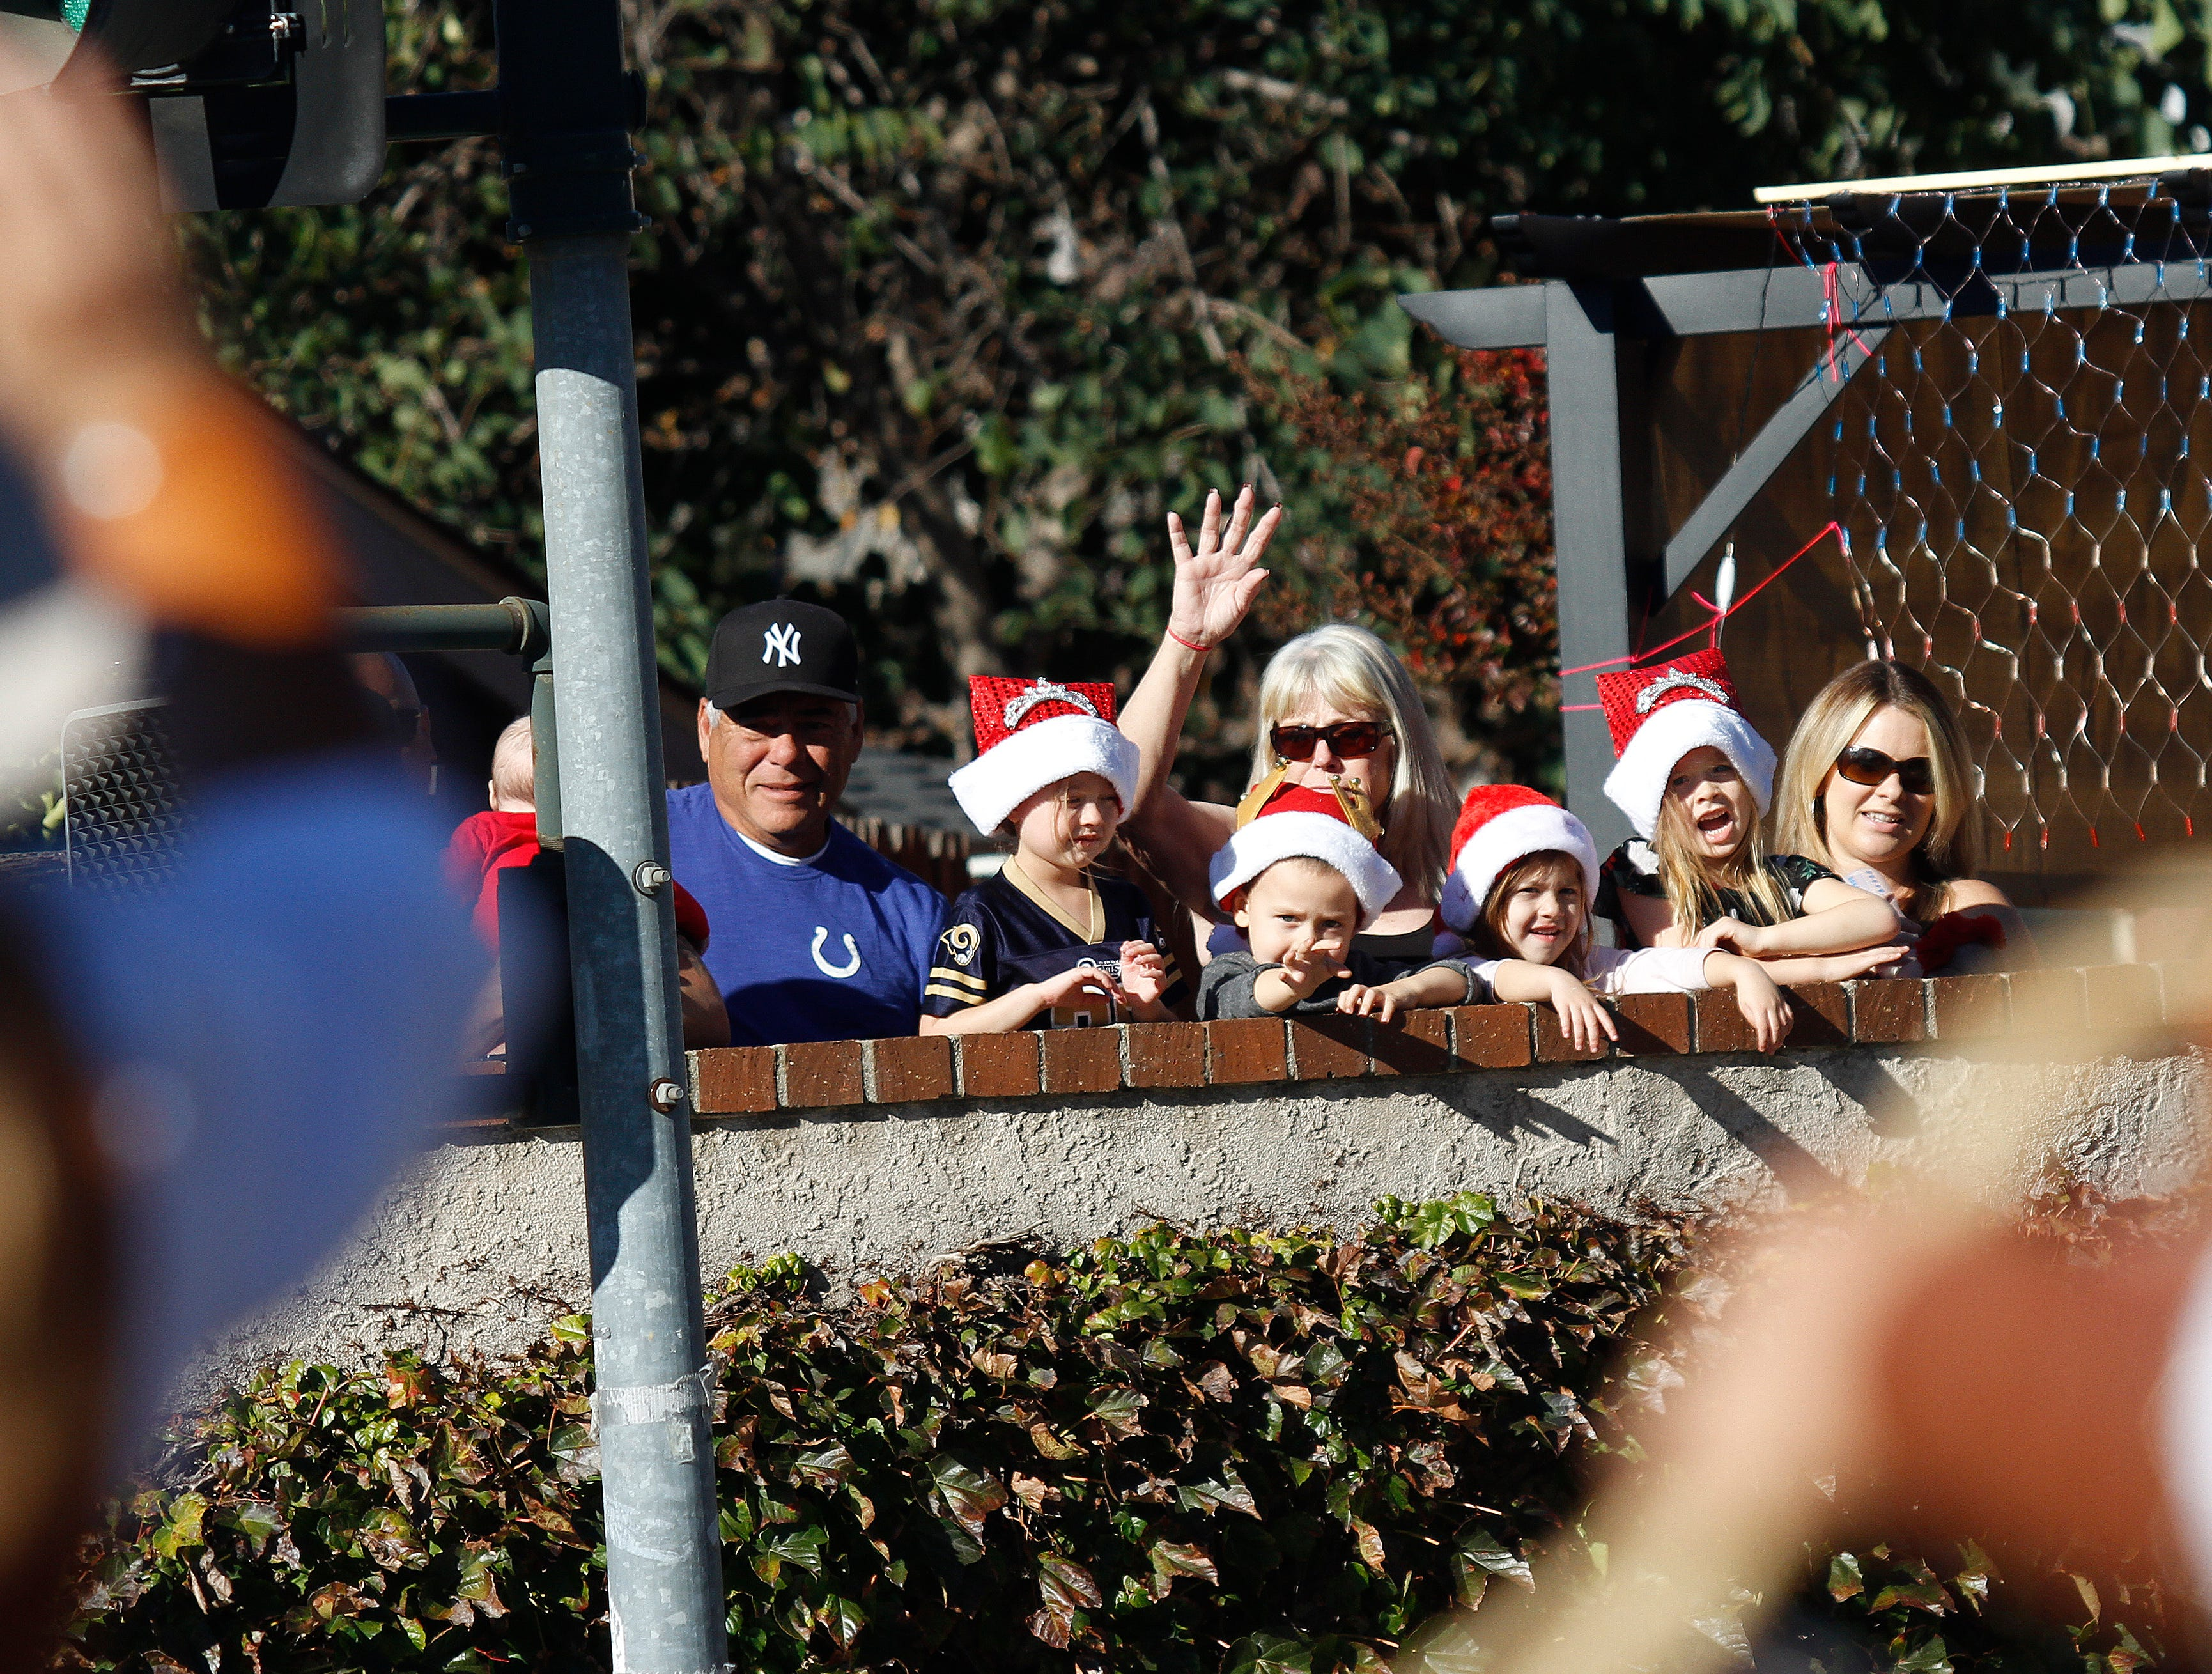 Onlookers watch the Christmas parade Saturday in Camarillo.